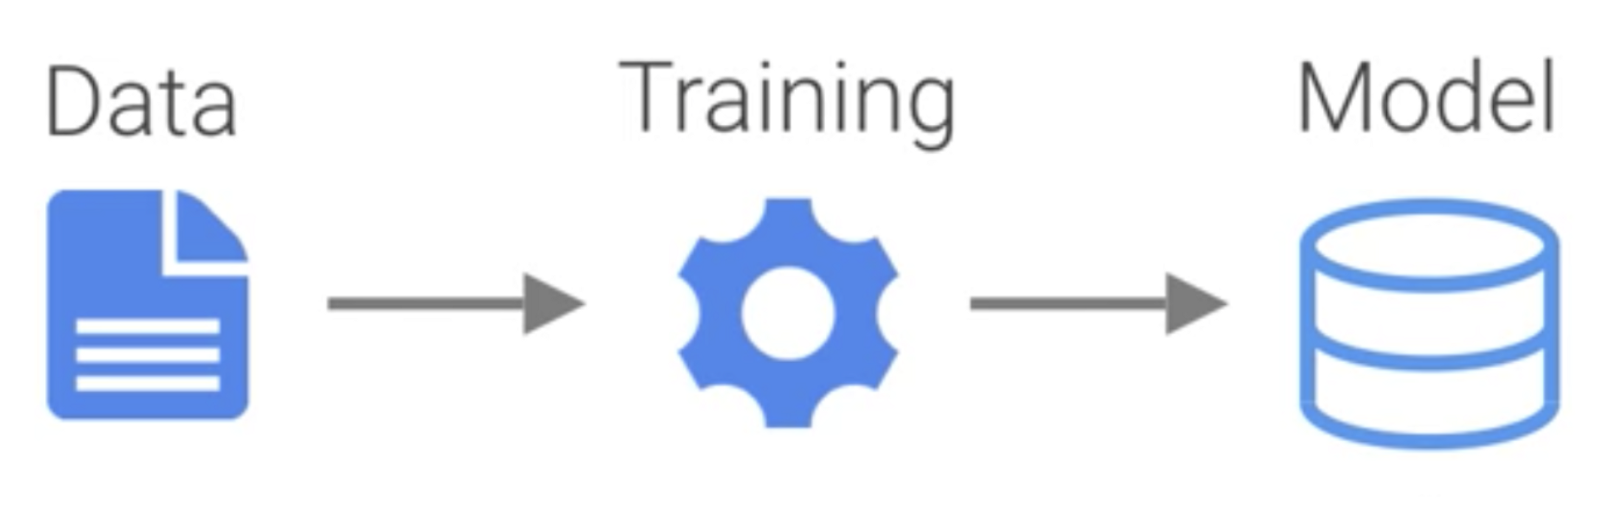 Diagram of Training in ML